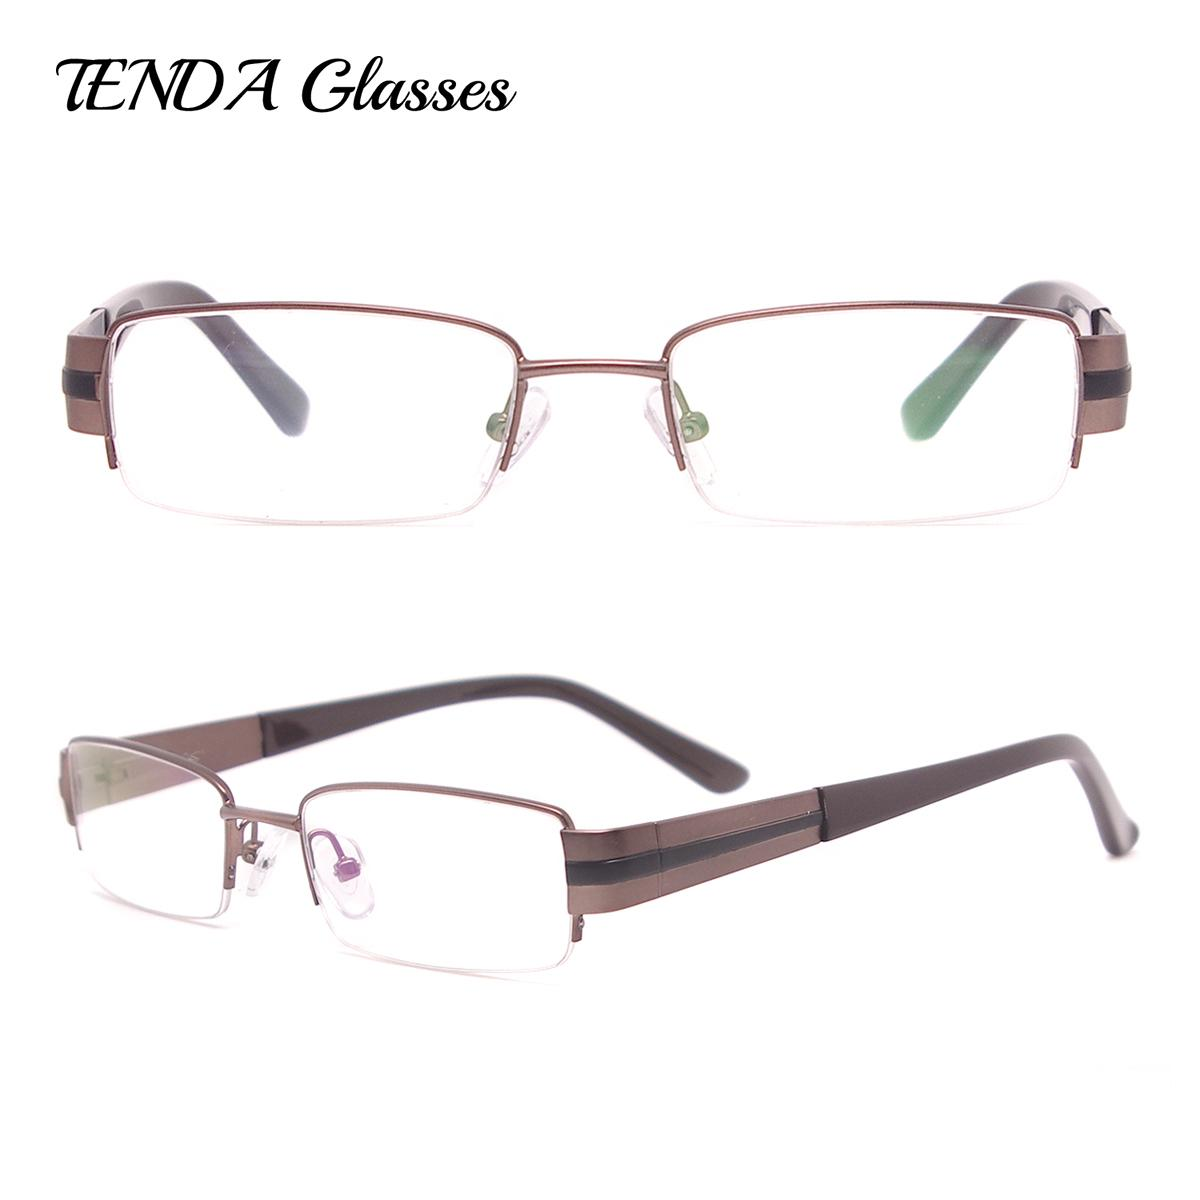 595267c2e47 Metal Eyeglass Frames Half Rim Rectangle Spectacles Men Classic  Prescription Glasses For Myopia   Reading Canada 2019 From Gwyseller